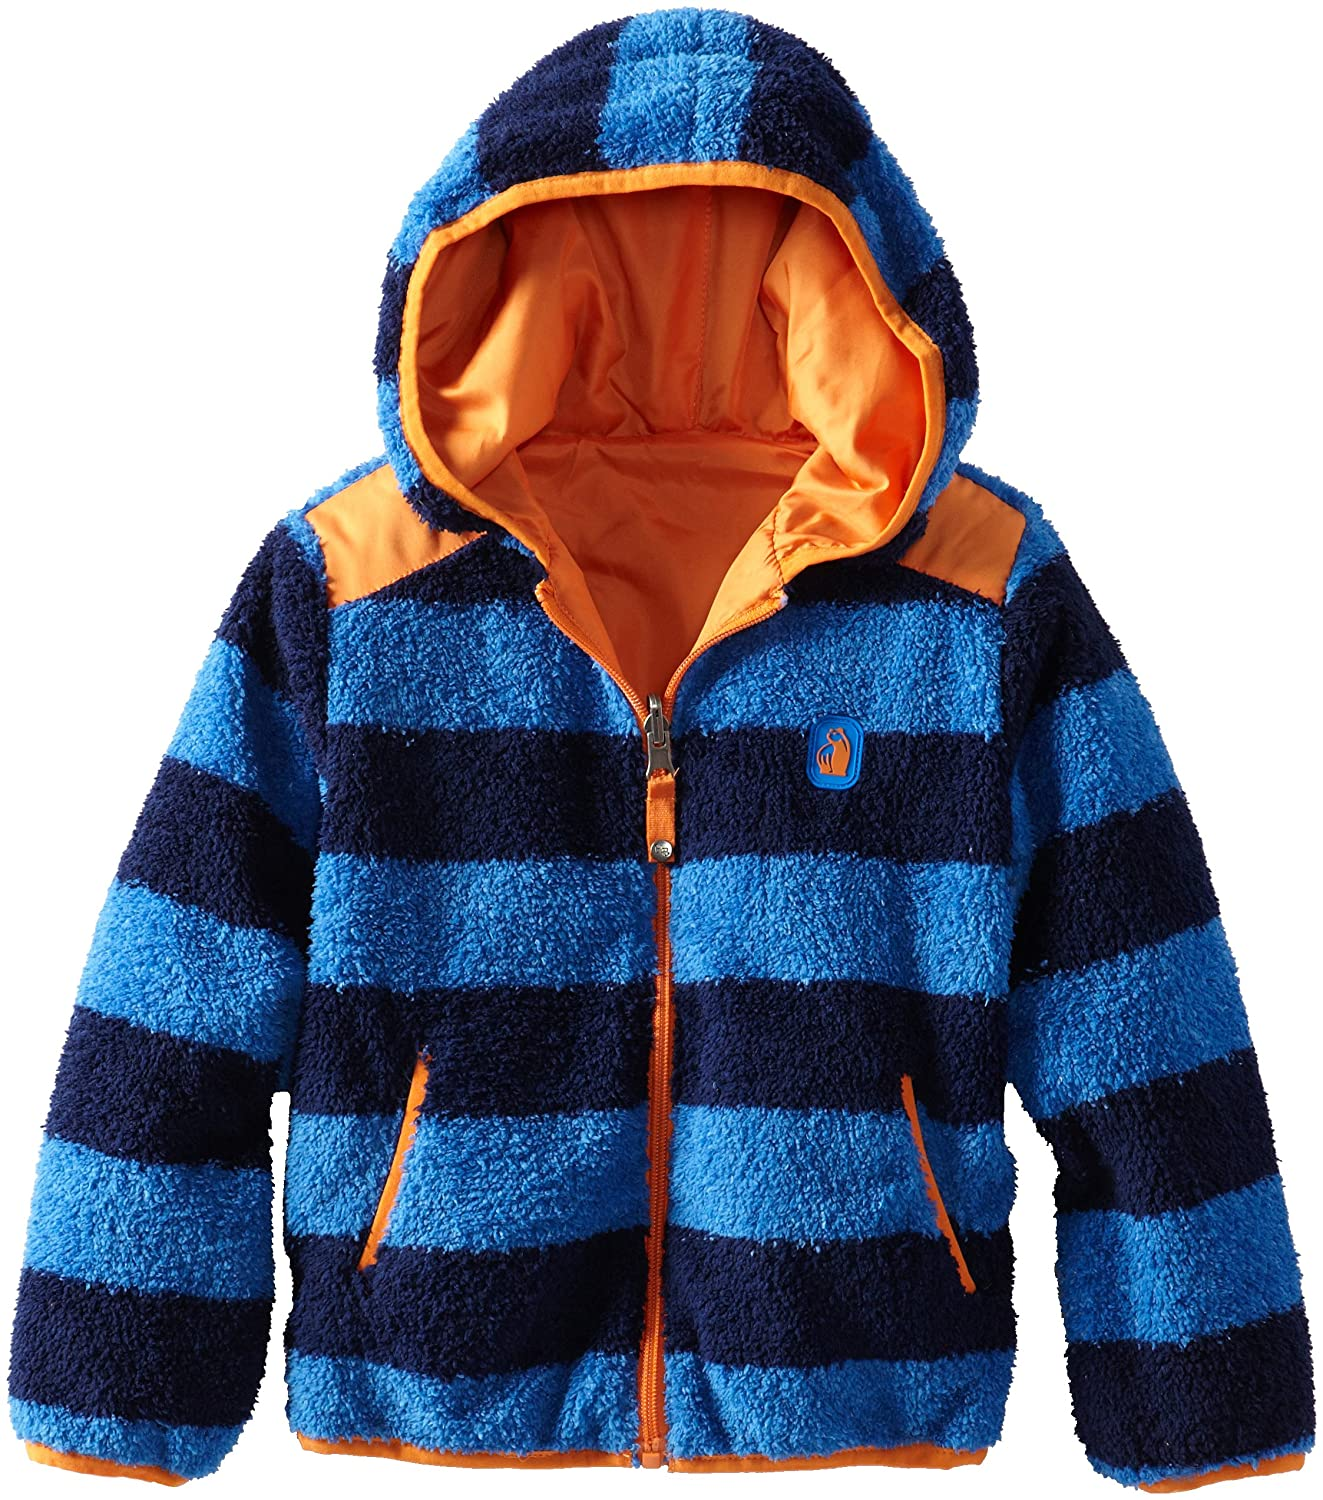 Rugged Bear Little Boys Striped Sherpa Reversible Fleece Jacket iXtreme RB81202